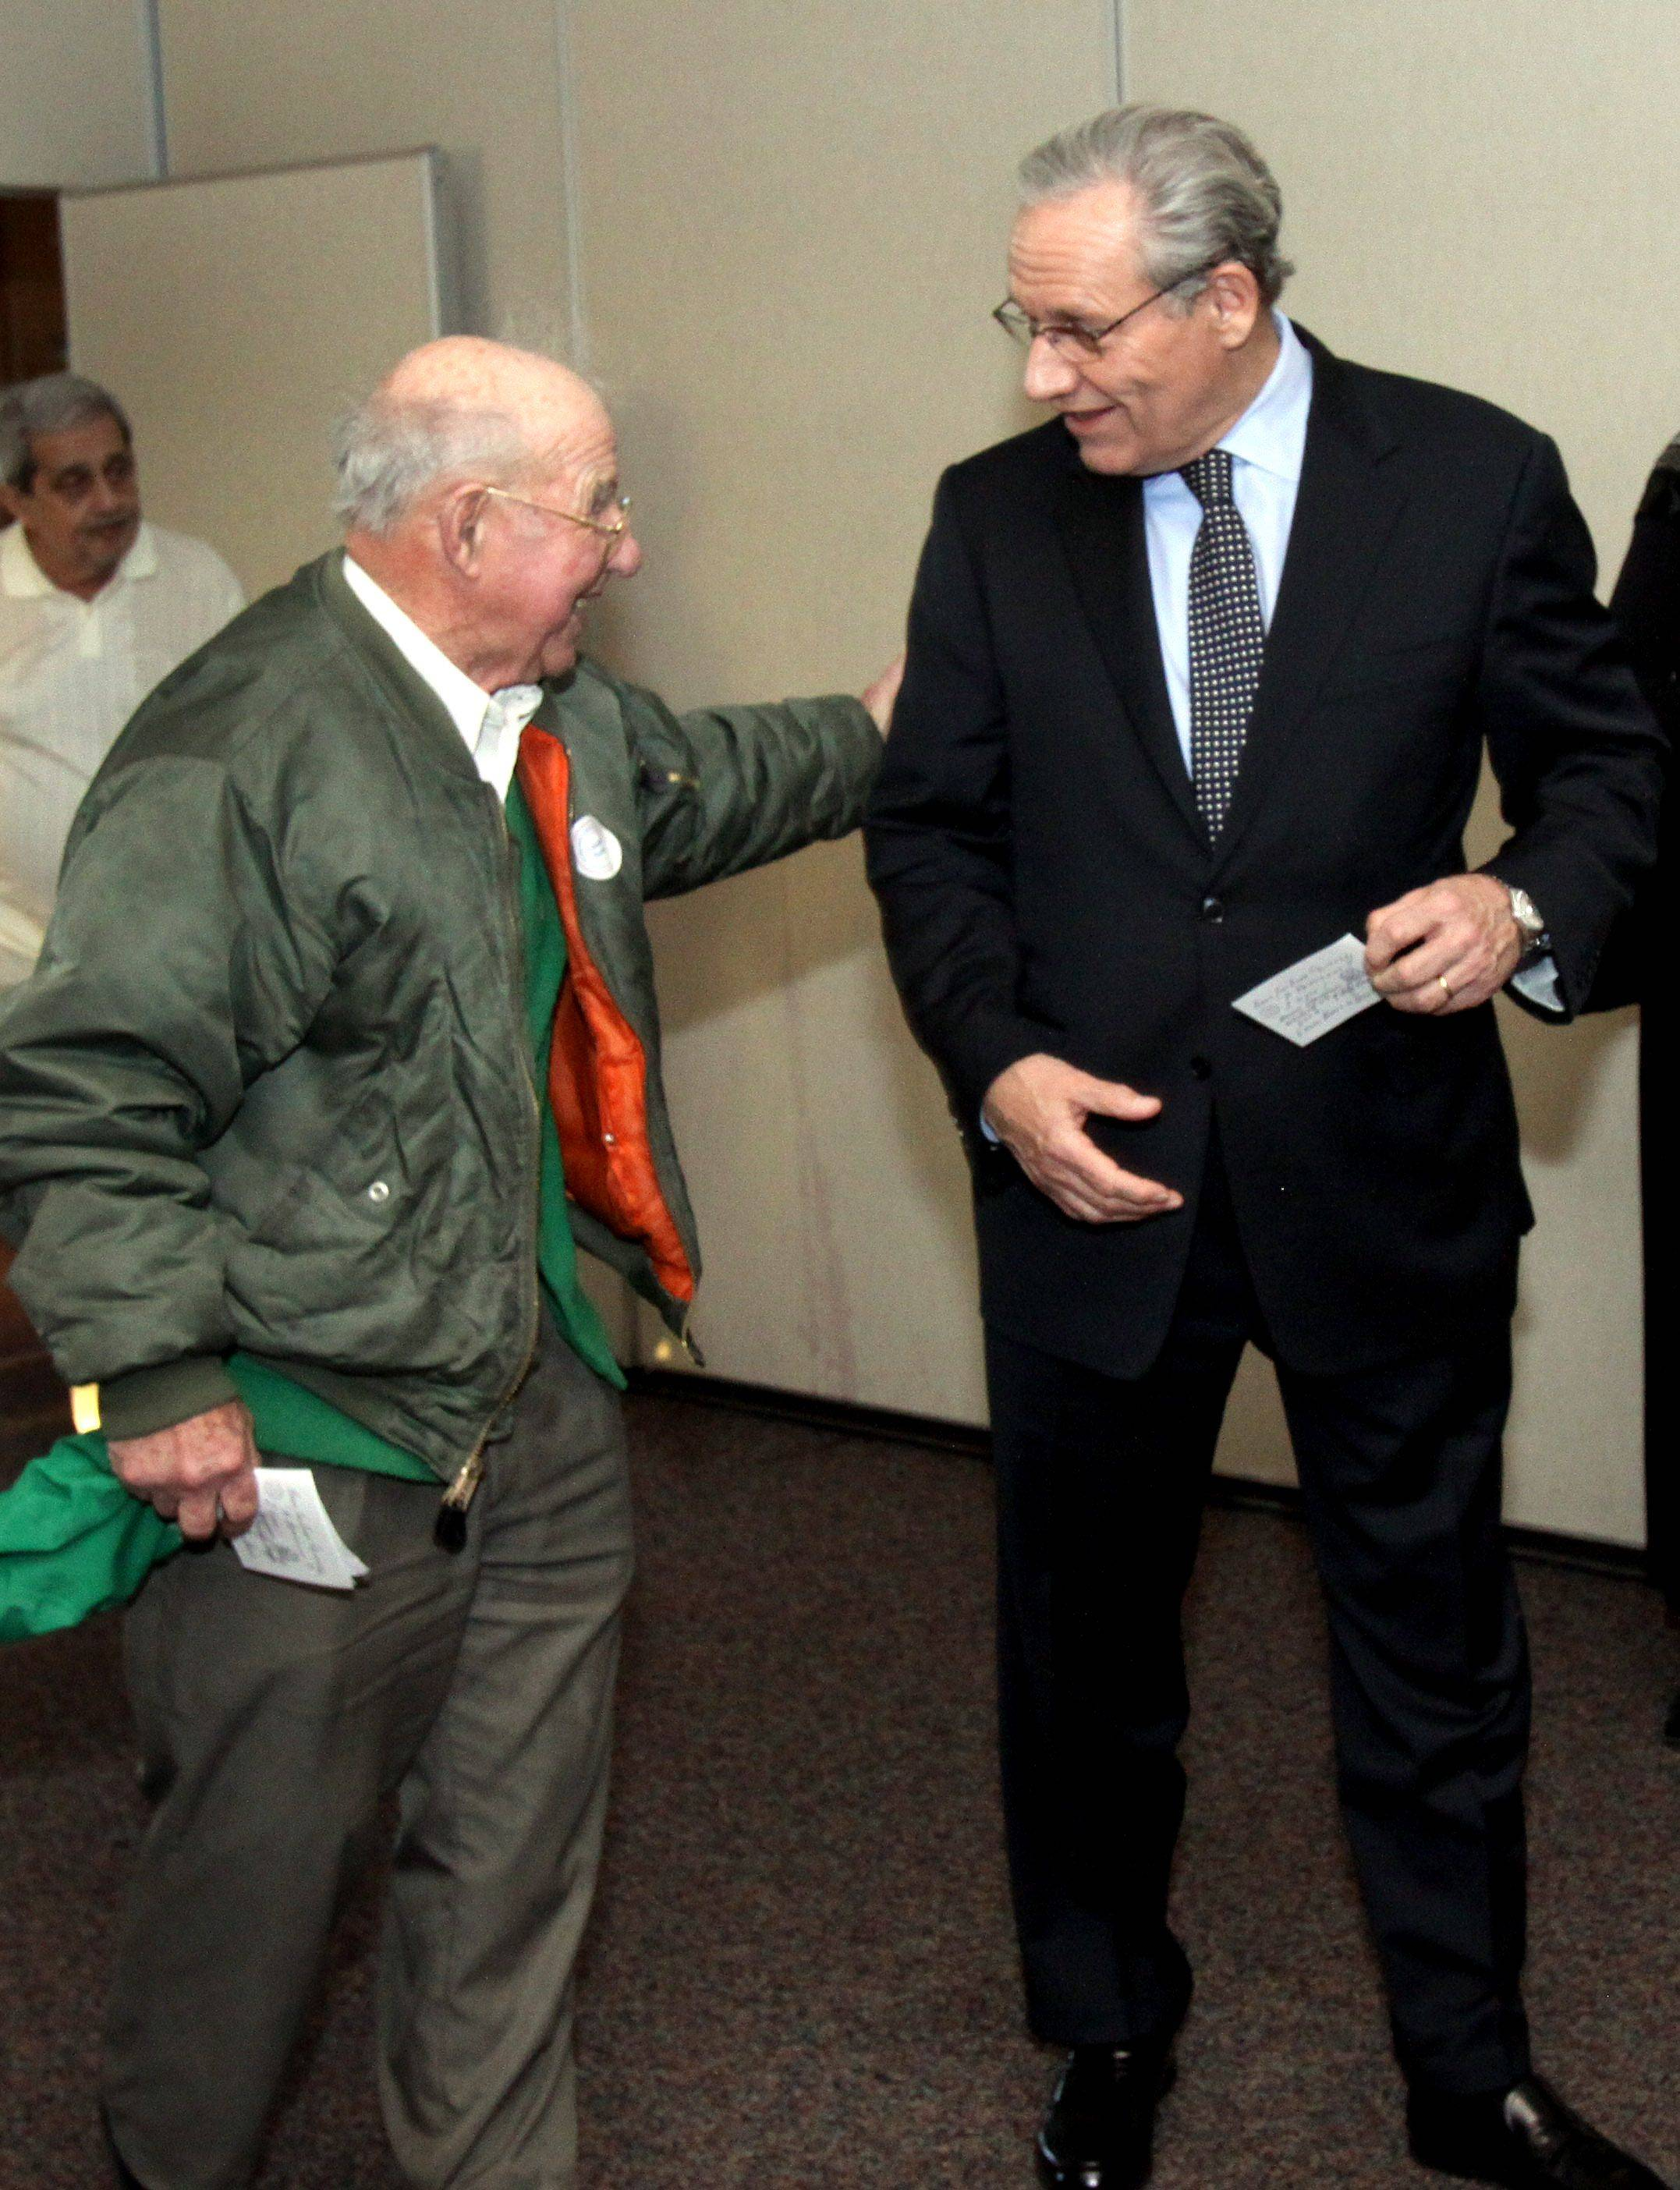 Bernie Hurley, left, of Wheaton says hello to his former physical education student, Bob Woodward, before Tuesday's event at Benedictine University in Lisle.